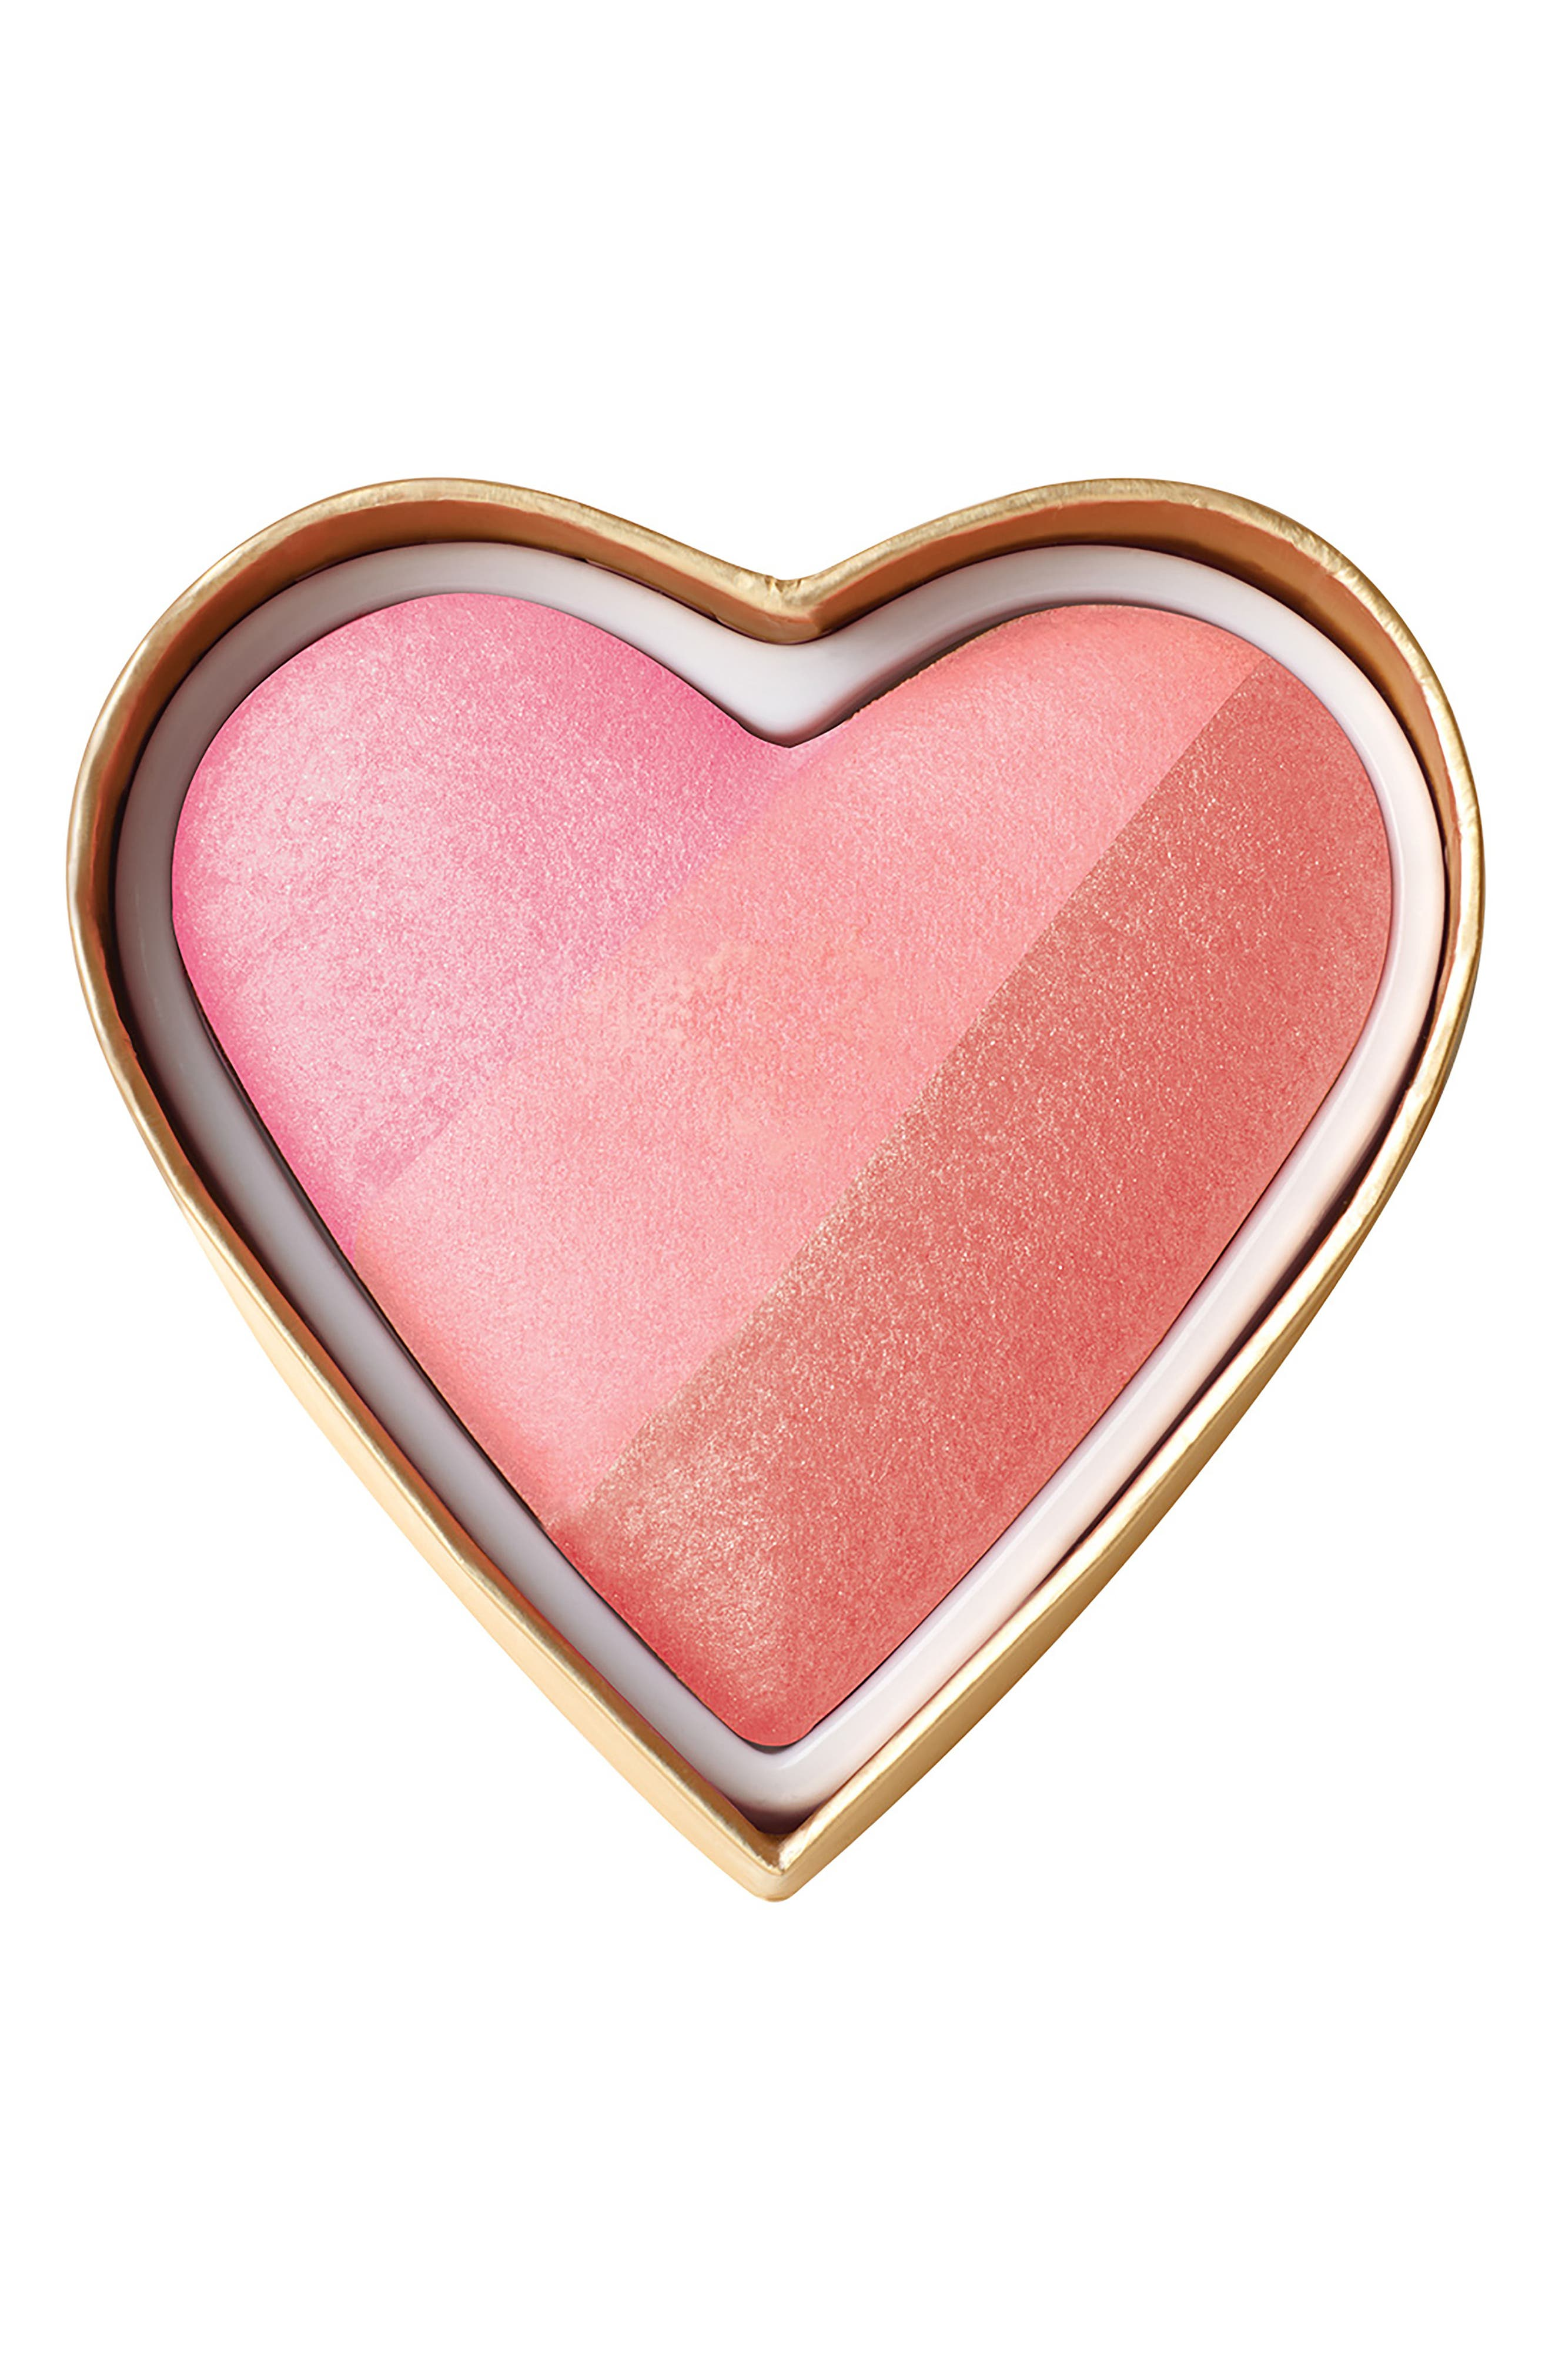 Sweethearts Perfect Flush Blush,                             Main thumbnail 1, color,                             CANDY GLOW